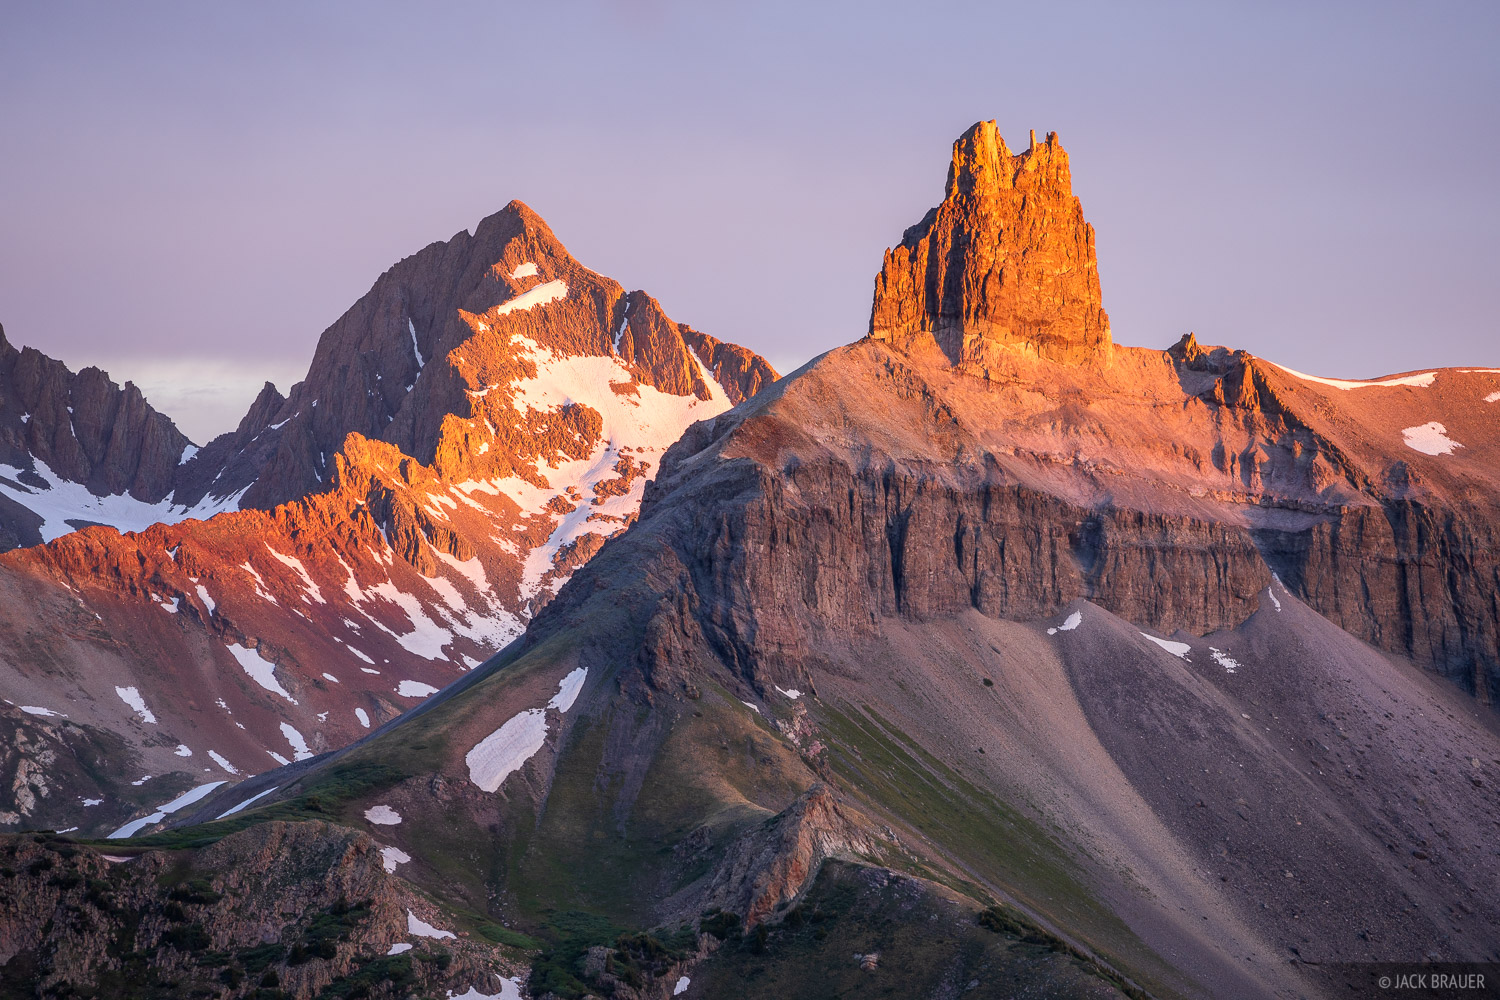 Black Face Mountain, Colorado, Gladstone Peak, Lizard Head Peak, Lizard Head Wilderness, San Juan Mountains, San Miguel Range, photo